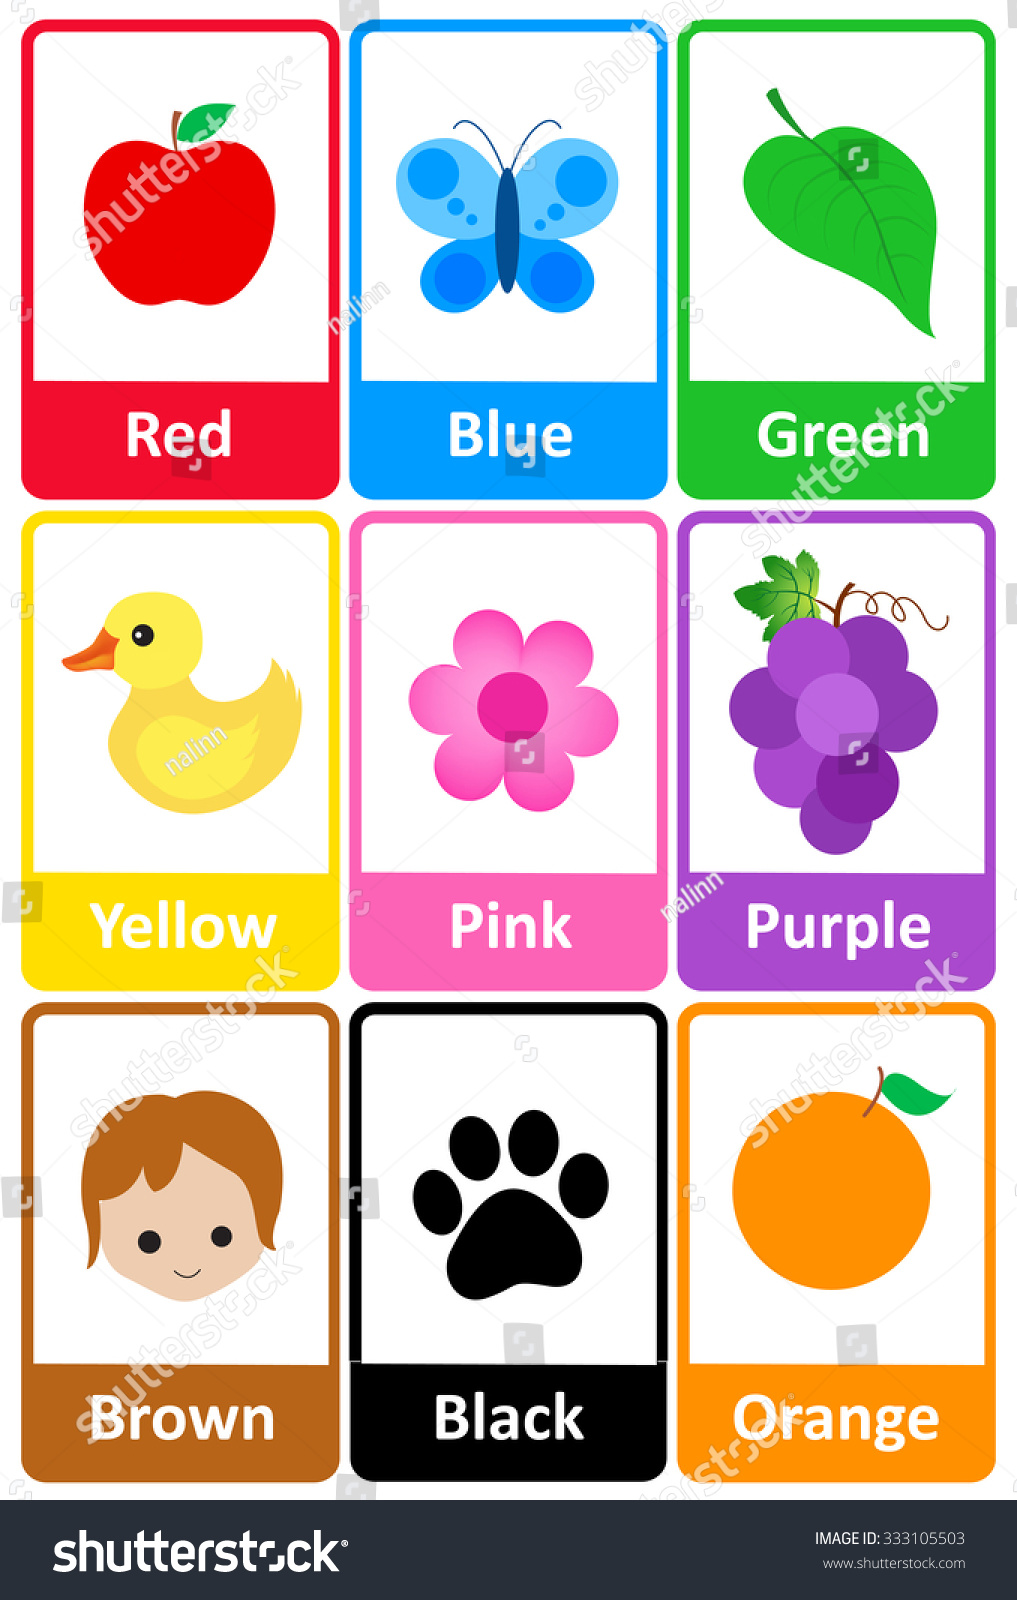 Printable flash card colletion for colors and their names with ...